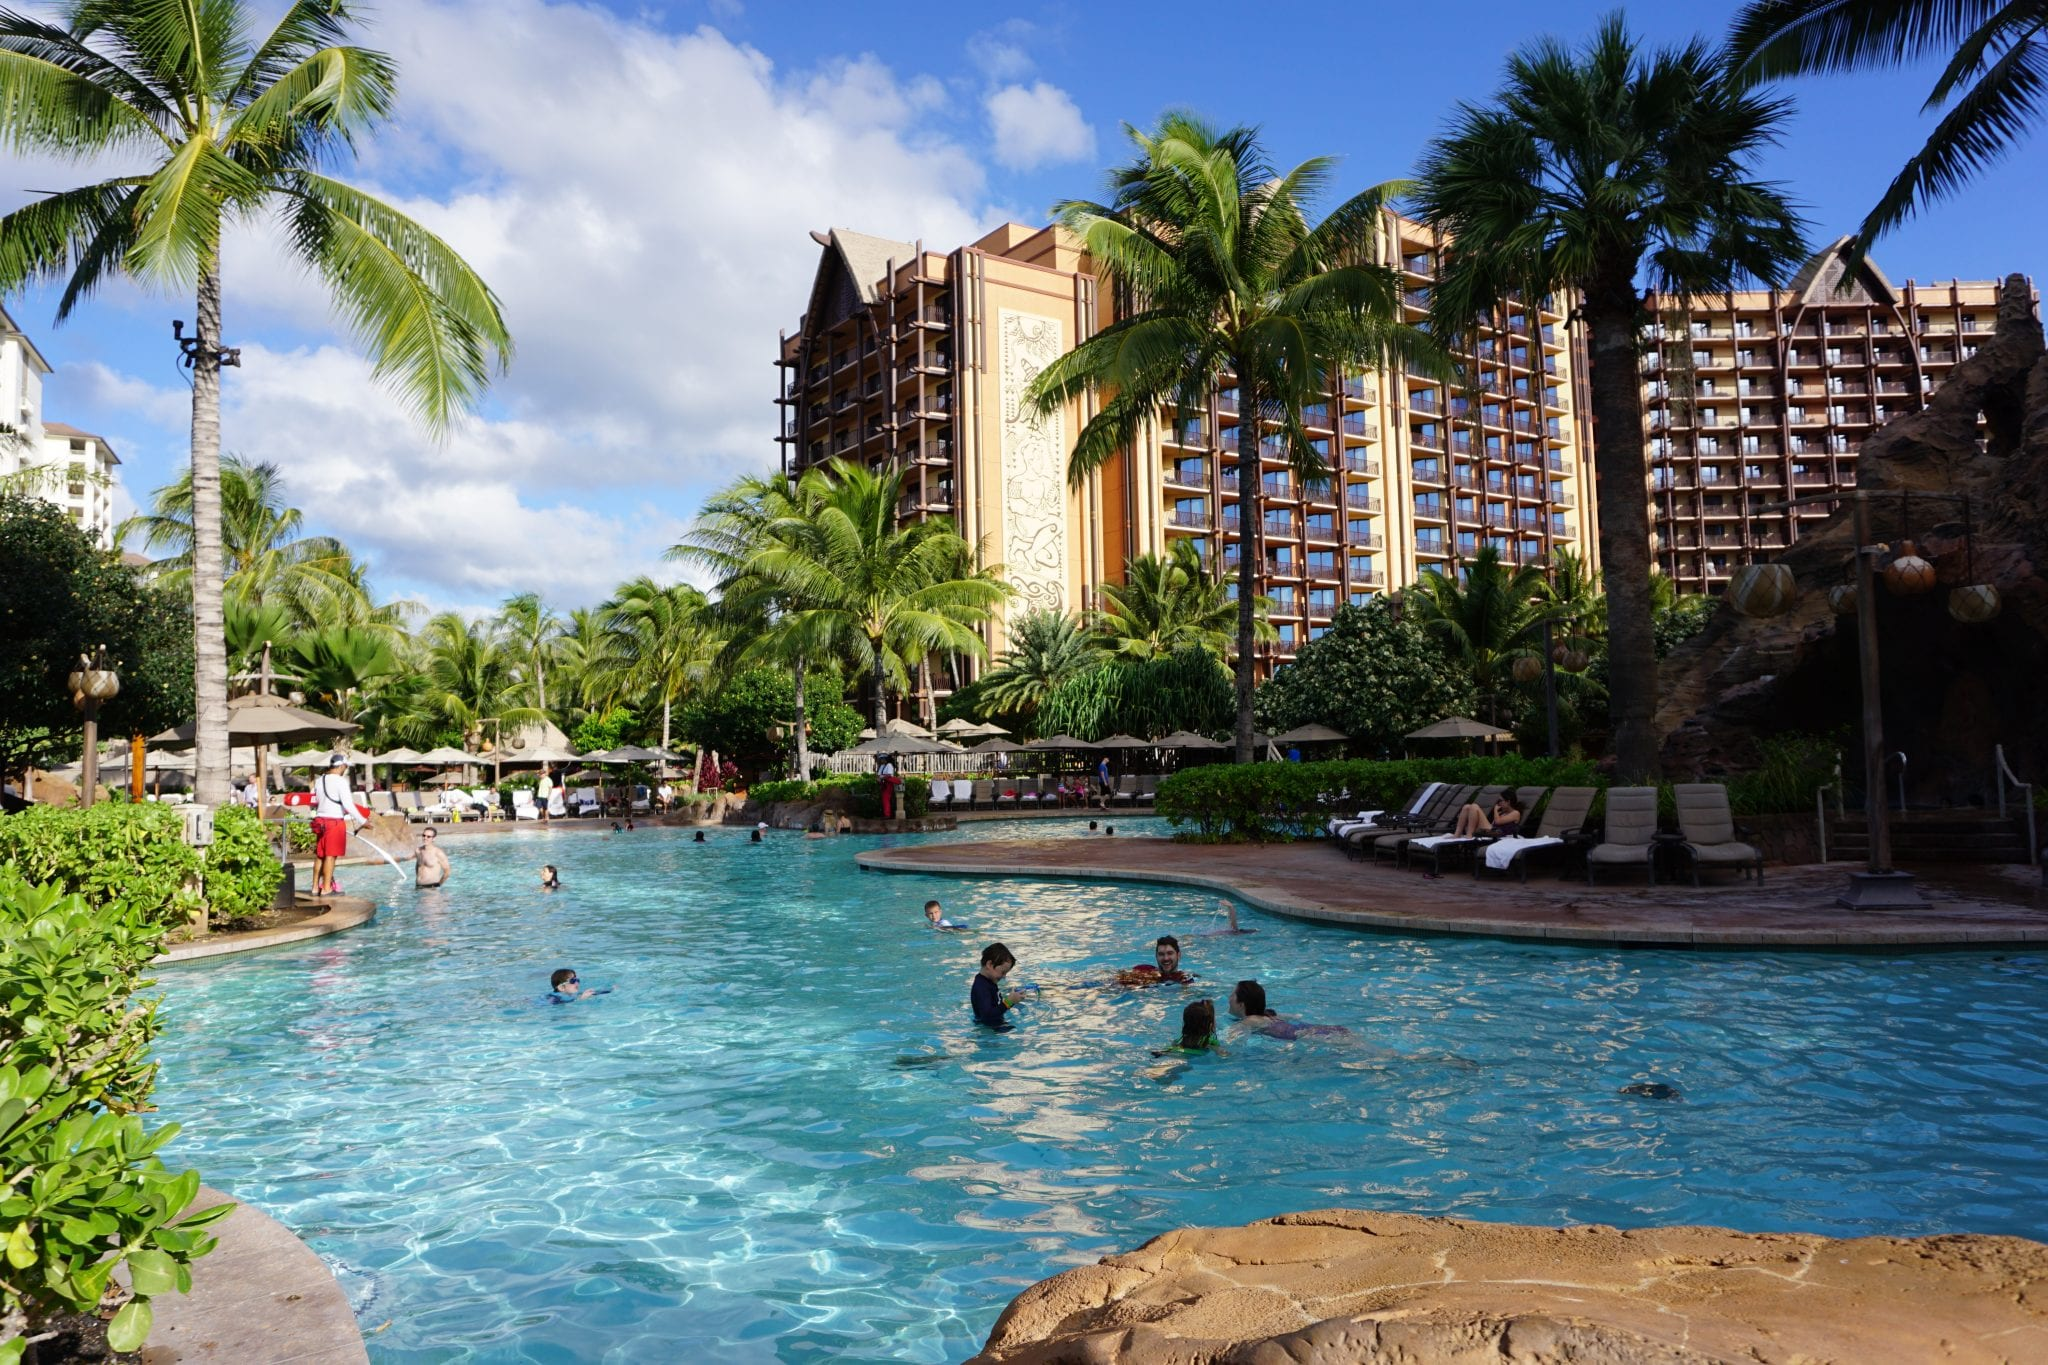 How we SAVE 50% on Disney Resorts with DVC Points - Disney ...